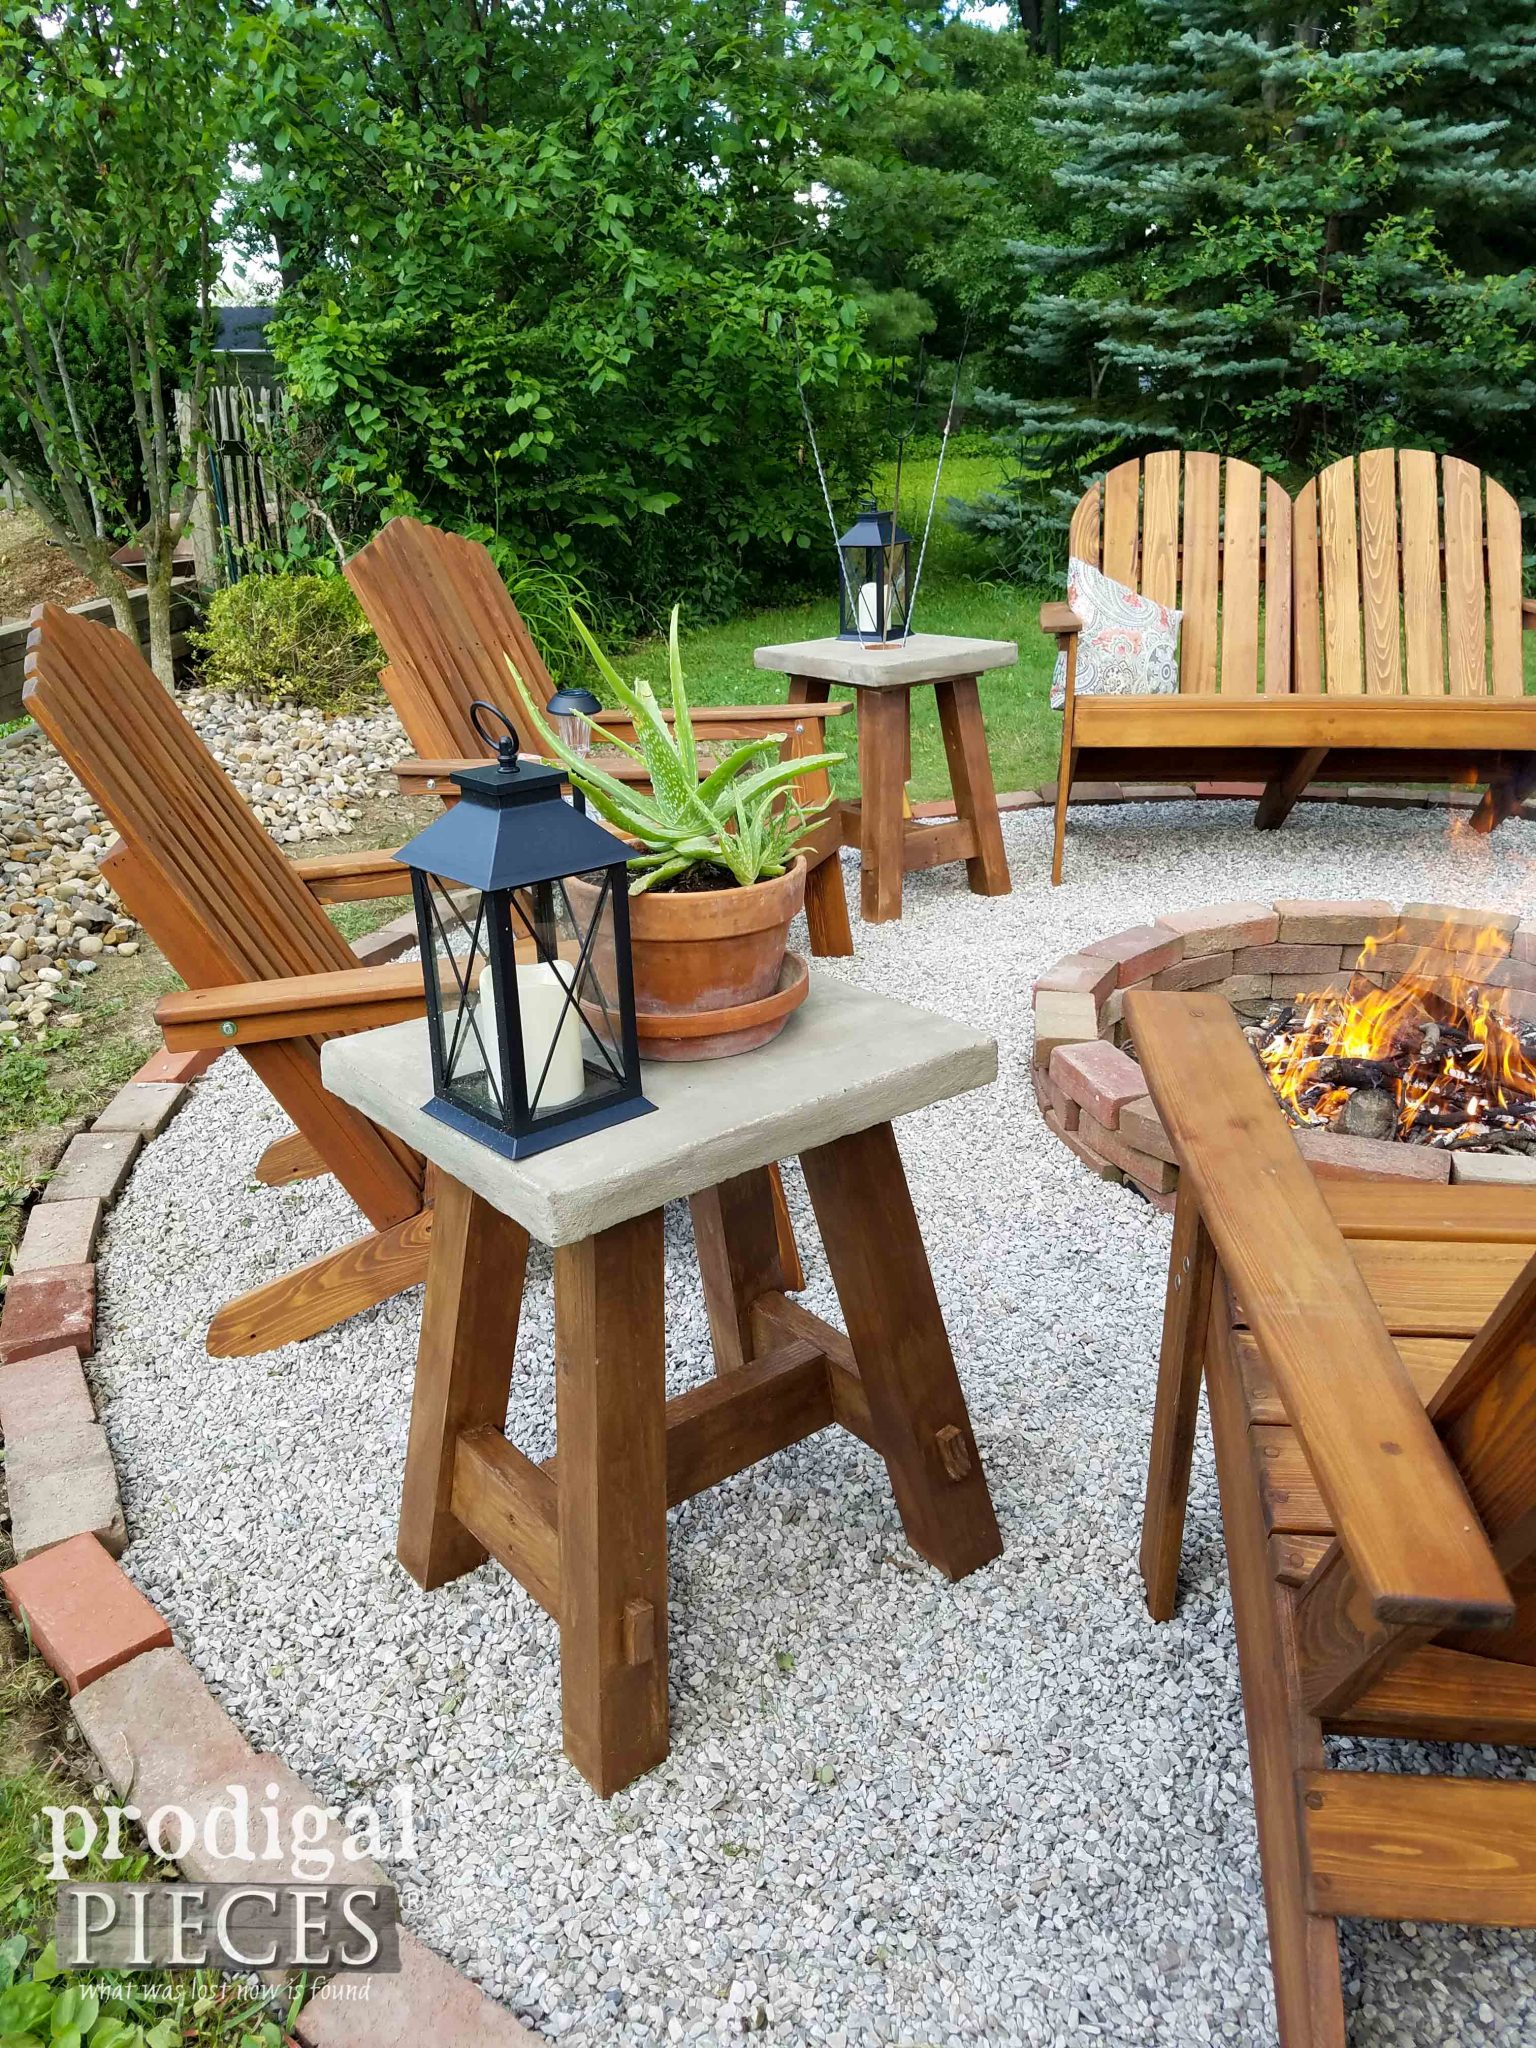 DIY Outdoor Concrete Table for Patio or Deck by Prodigal Pieces | prodigalpieces.com